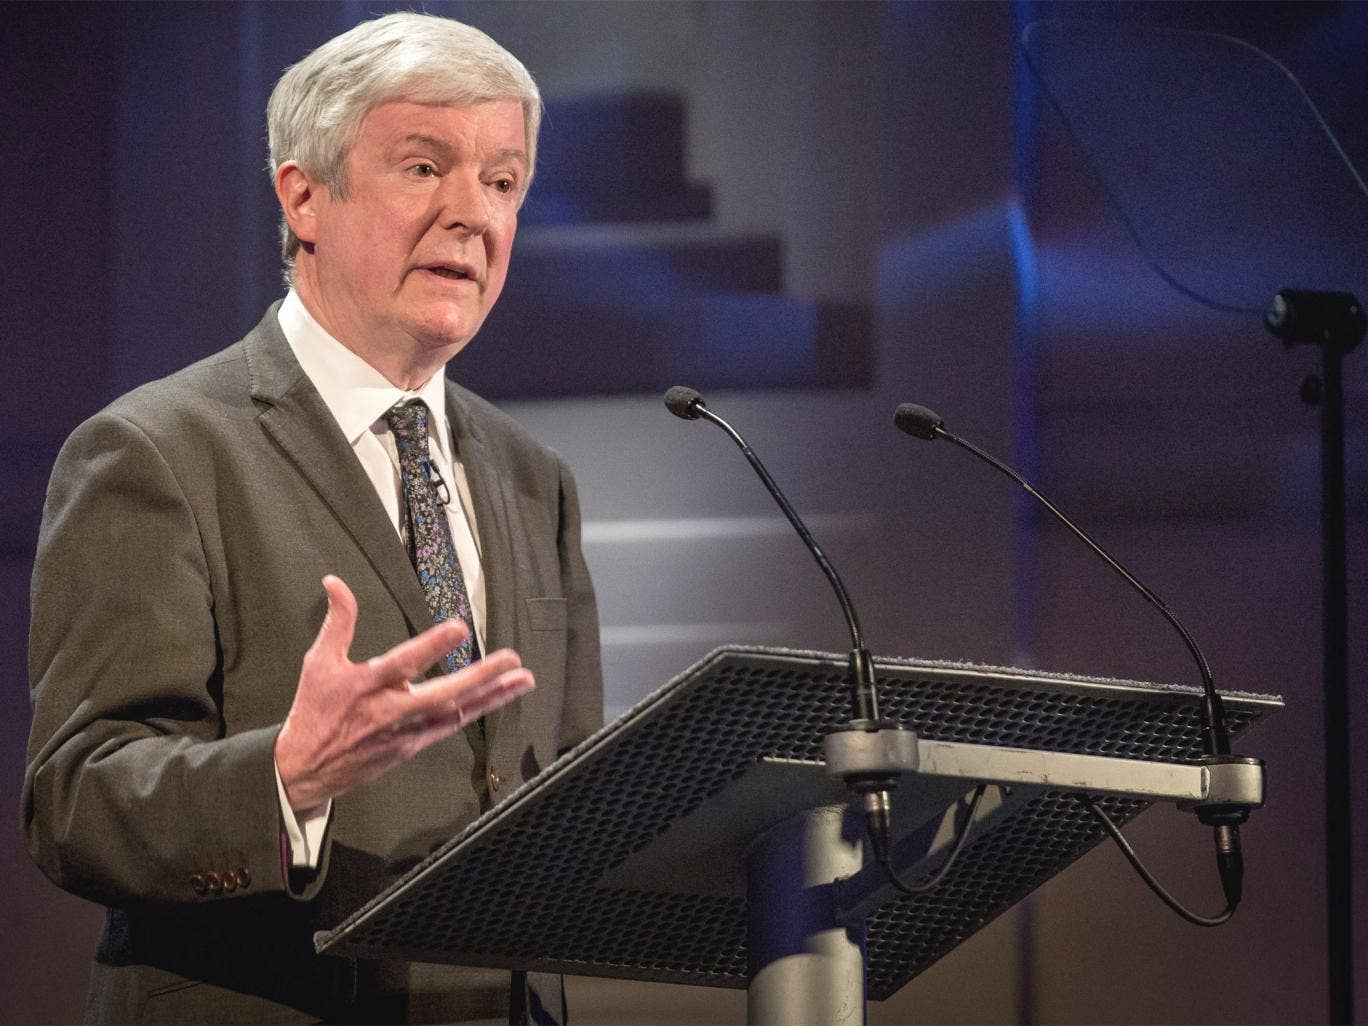 Director General Tony Hall delivers a speech at the Radio Theatre in the BBC's New Broadcasting House headquarters